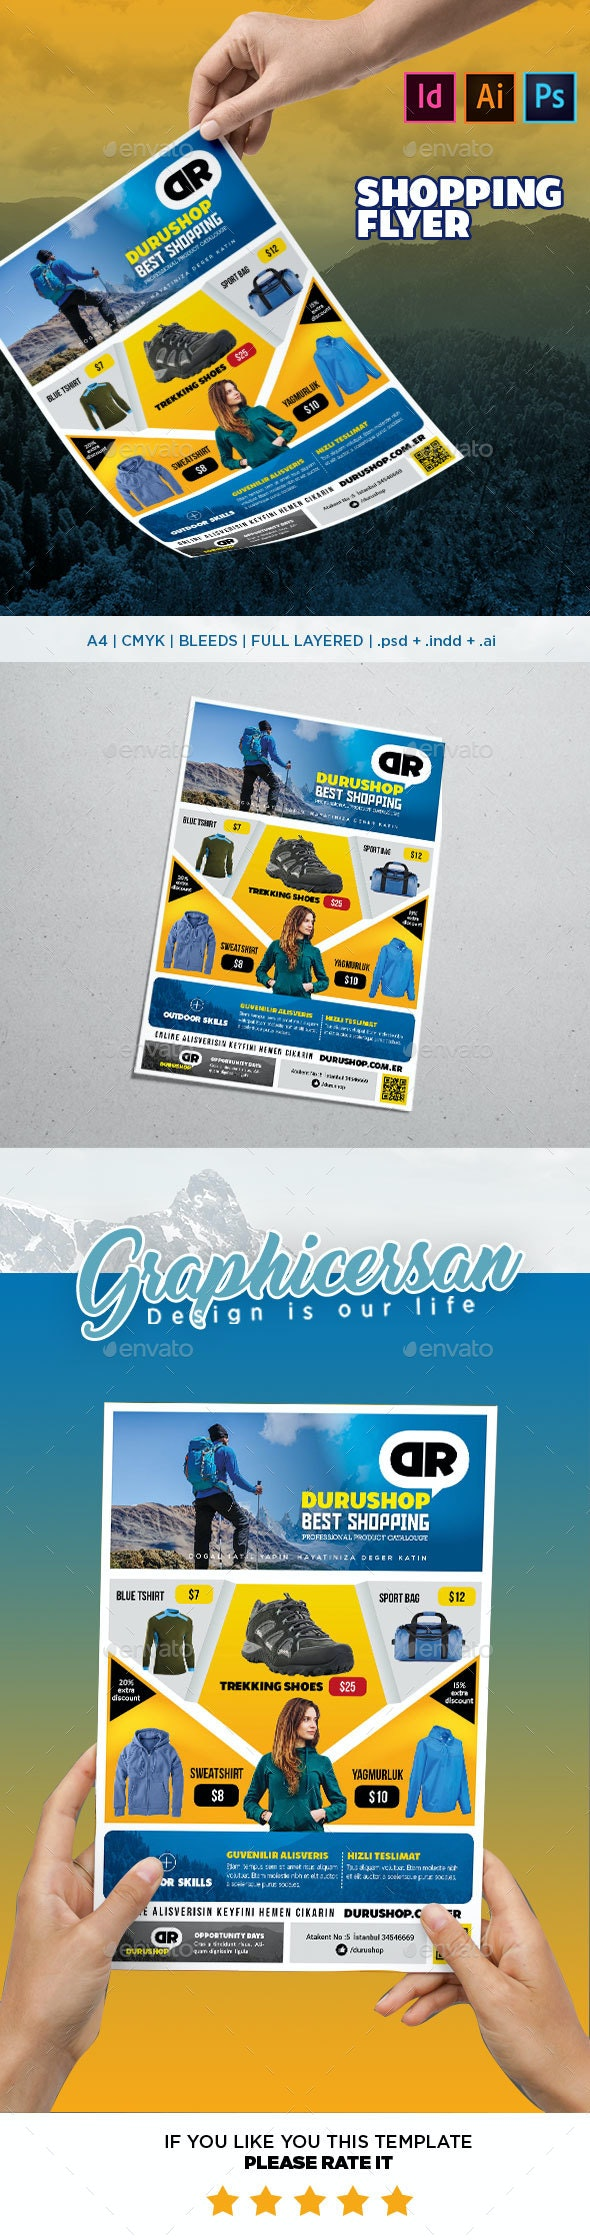 Shopping Flyer Template - Commerce Flyers